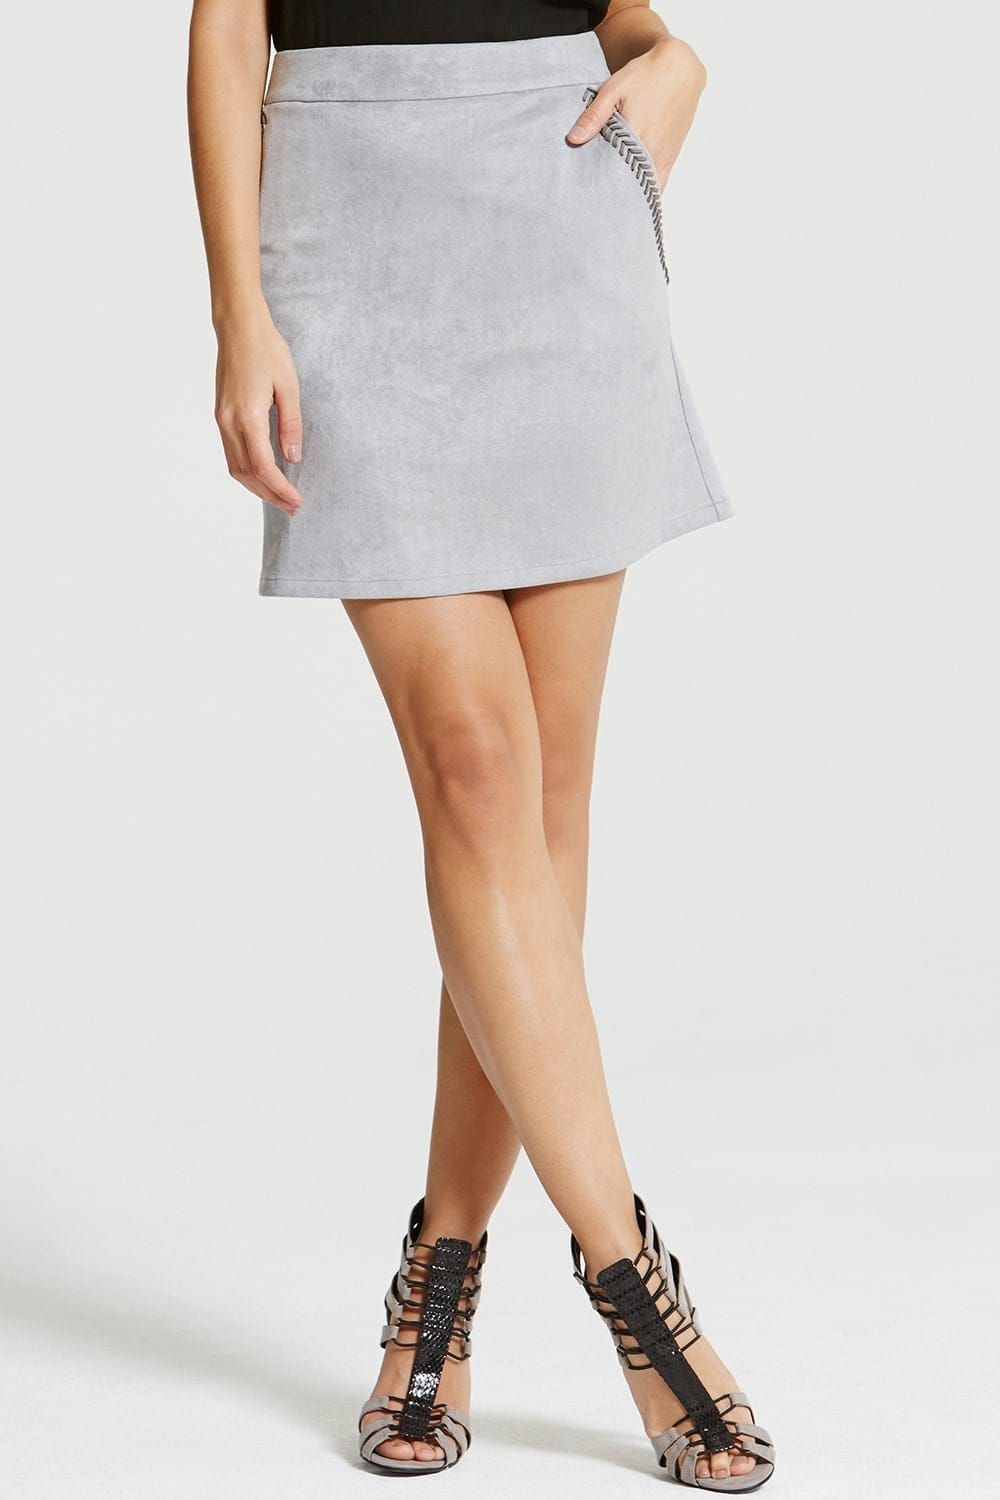 Outlet Girls On Film Light Grey Suede Skirt - Outlet Girls On Film ...